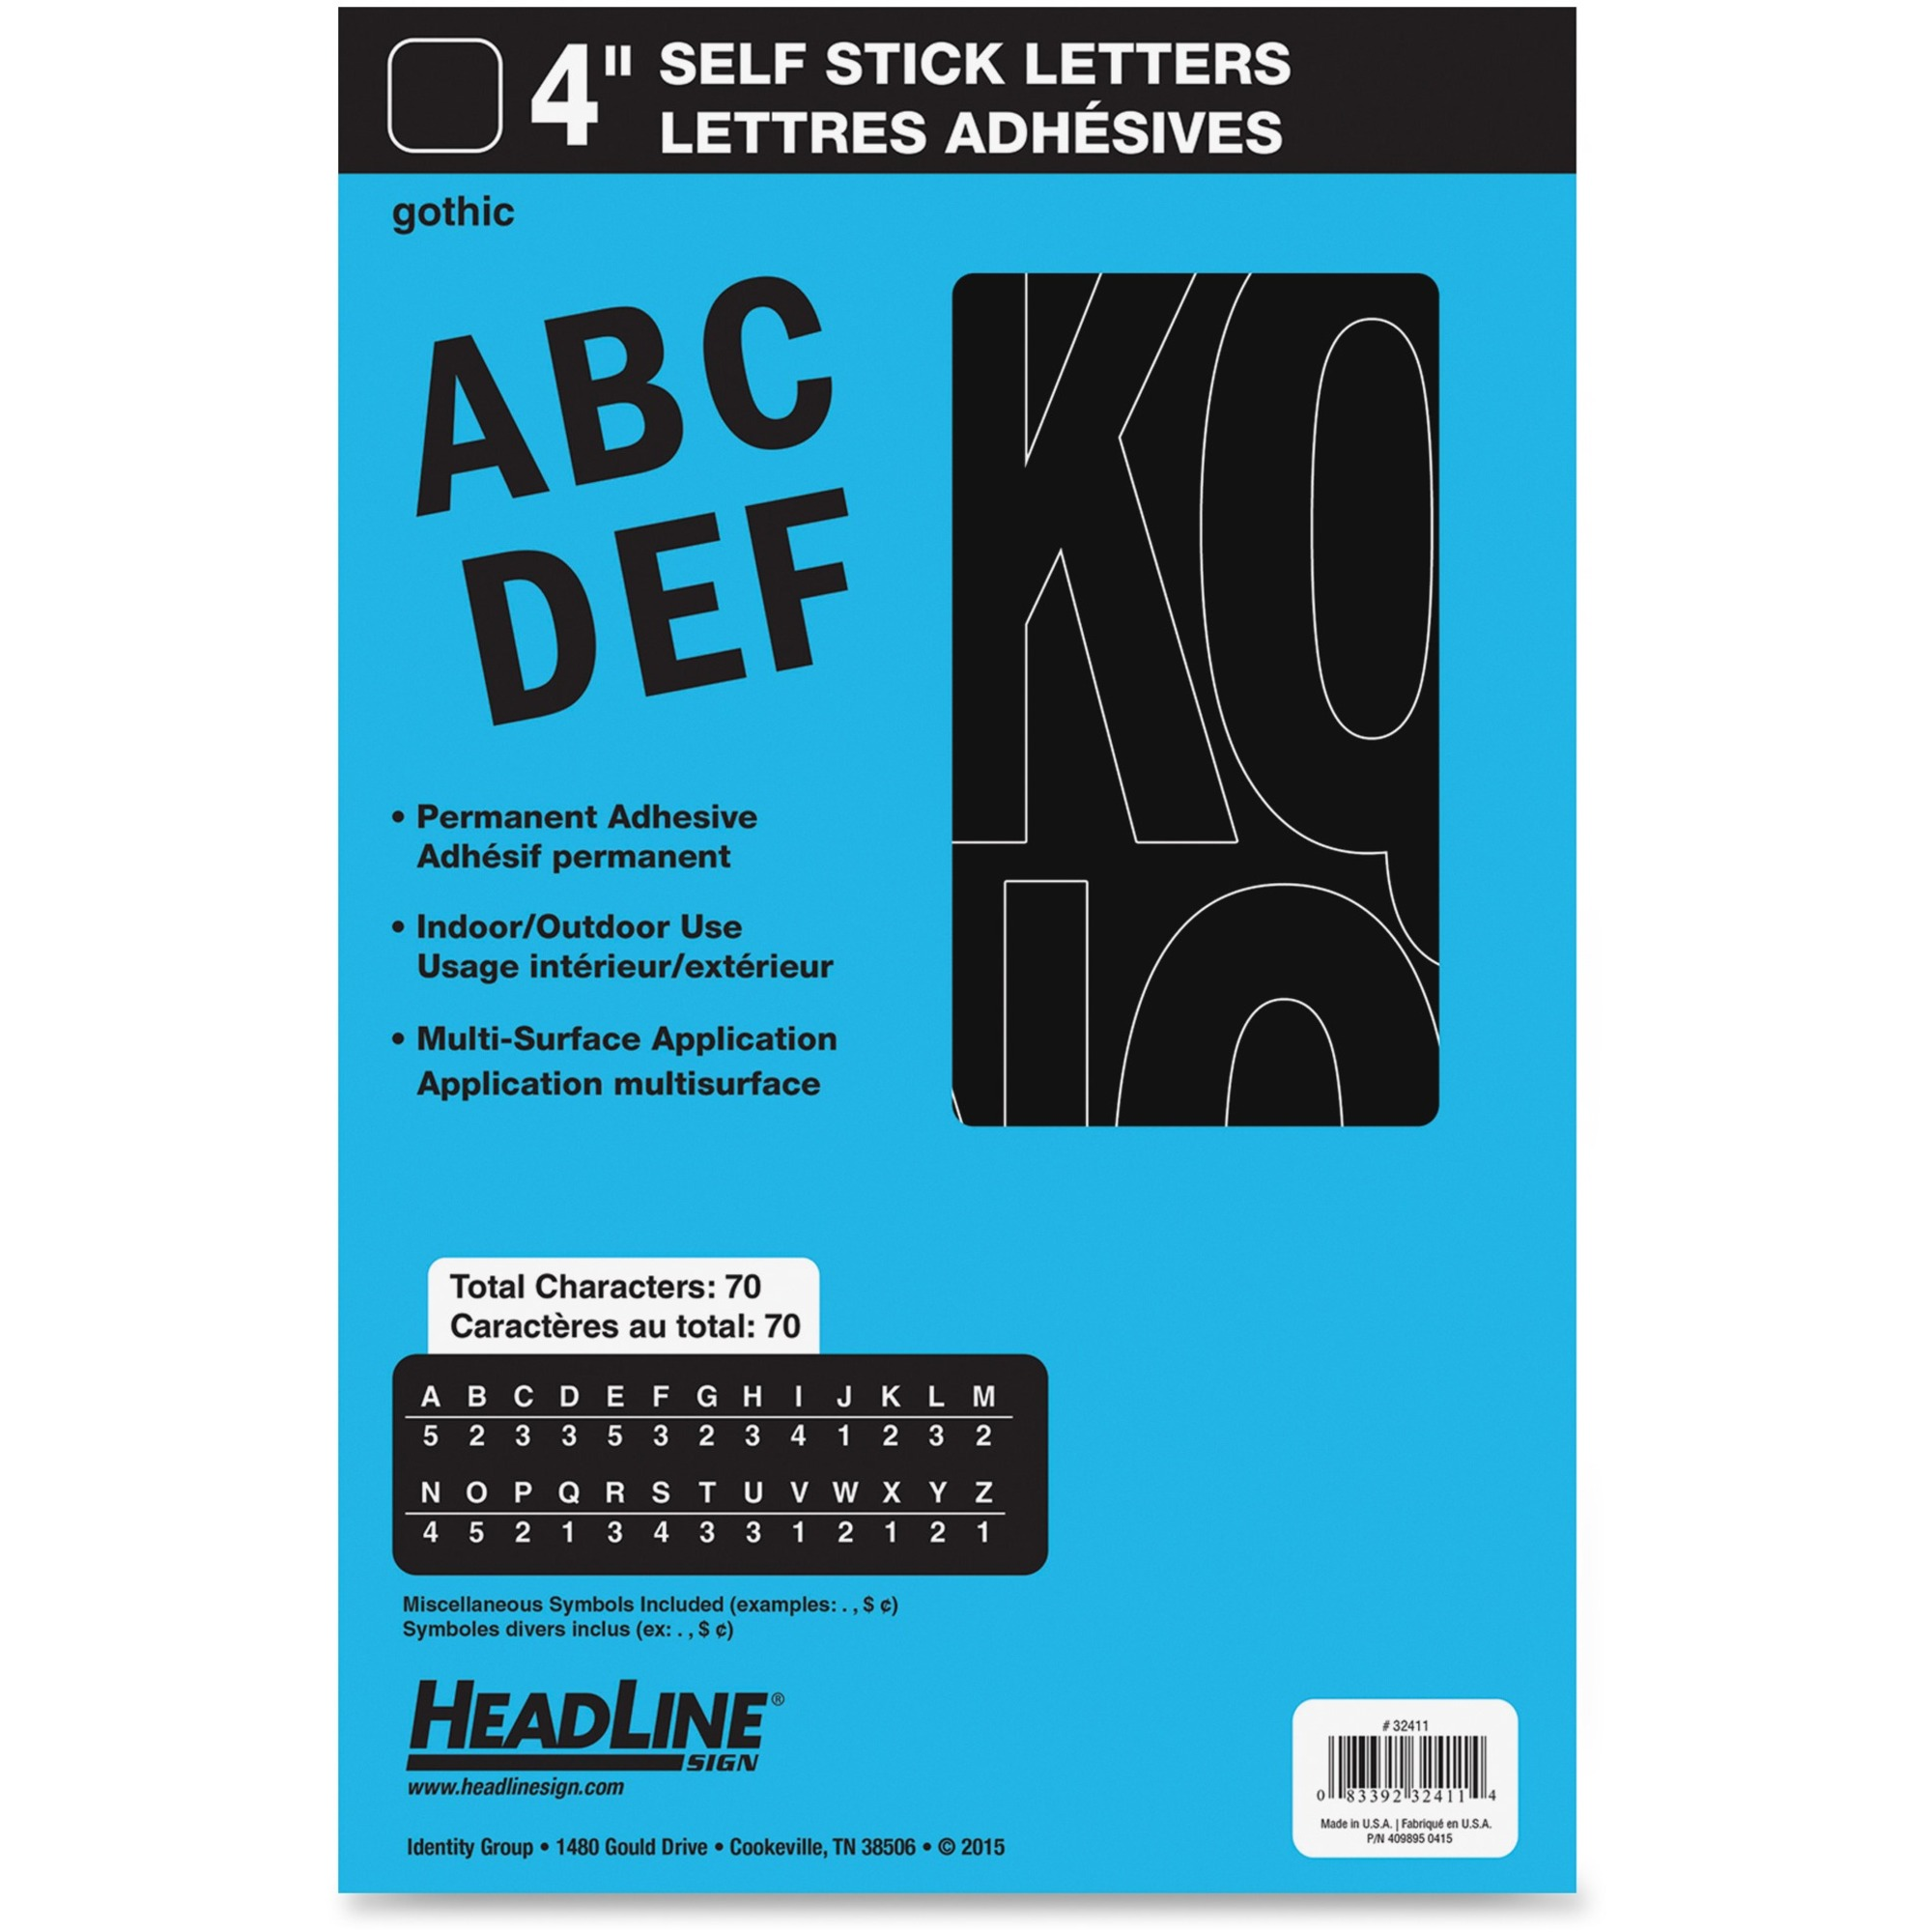 headline black vinyl stick on letters self adhesive water proof permanent adhesive 4 1016 mm length black vinyl 1 each